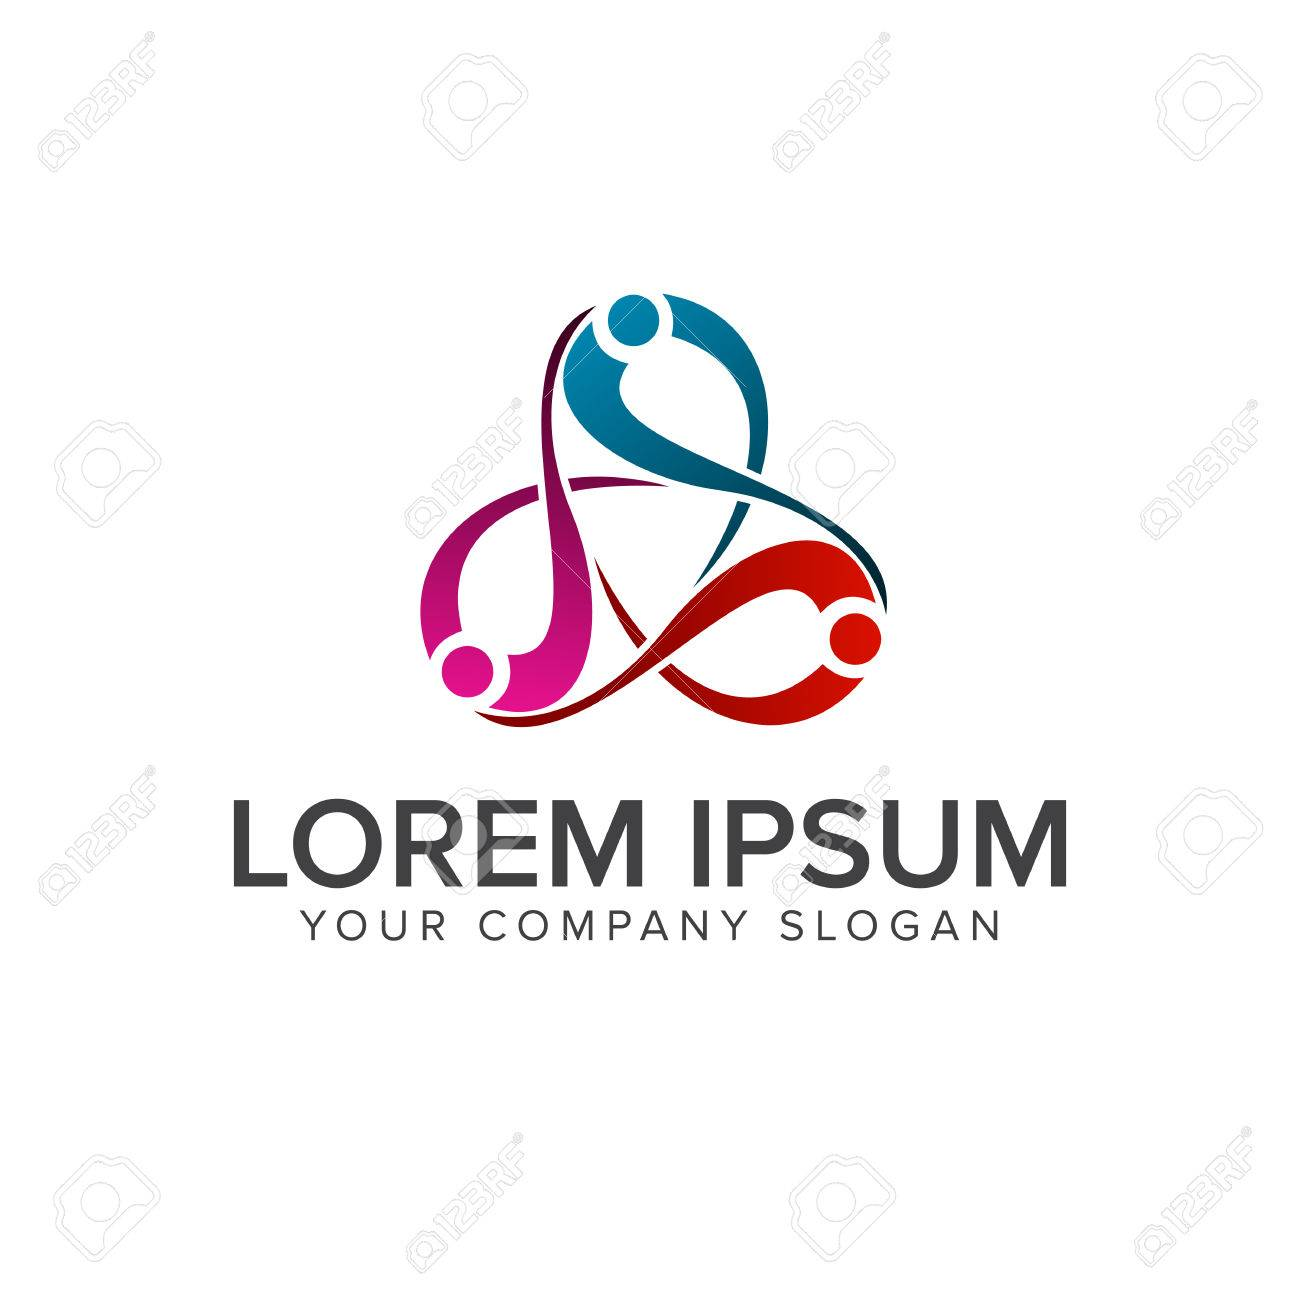 People business and consulting logo teamwork communication group people business and consulting logo teamwork communication group logo design concept template stock vector cheaphphosting Image collections